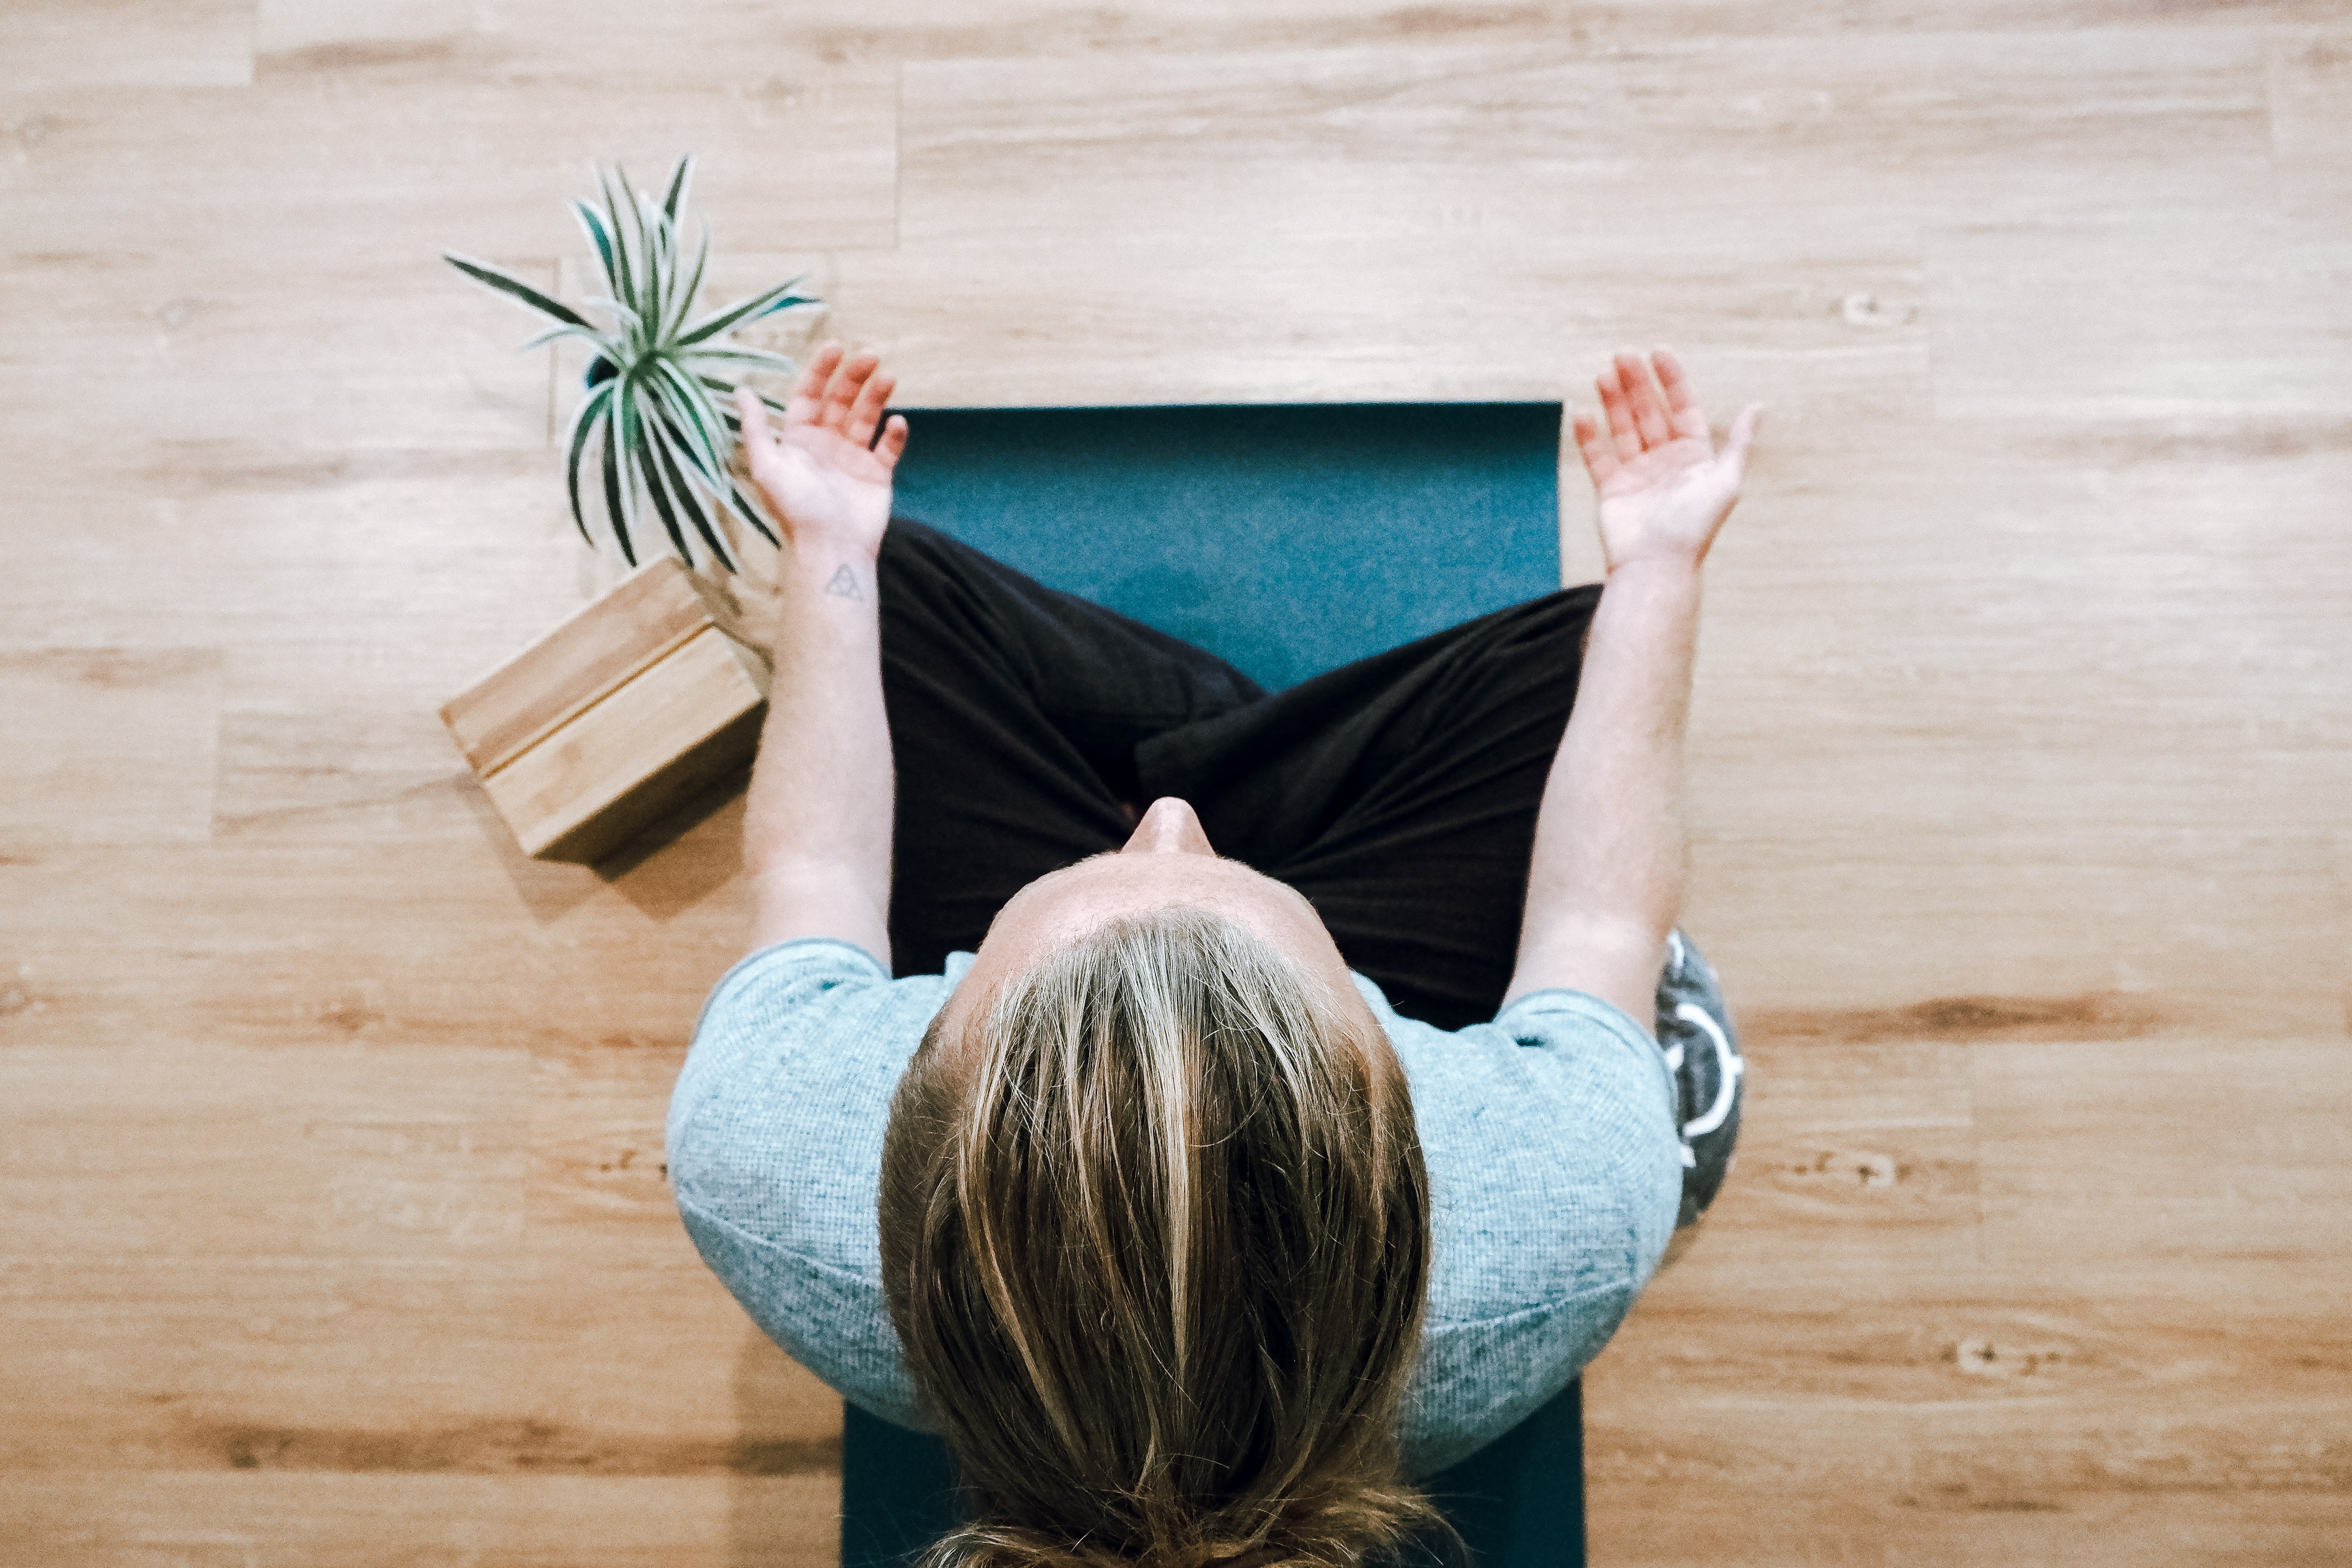 woman-in-black-pants-and-gray-shirt-sitting-in-a-wooden-floor